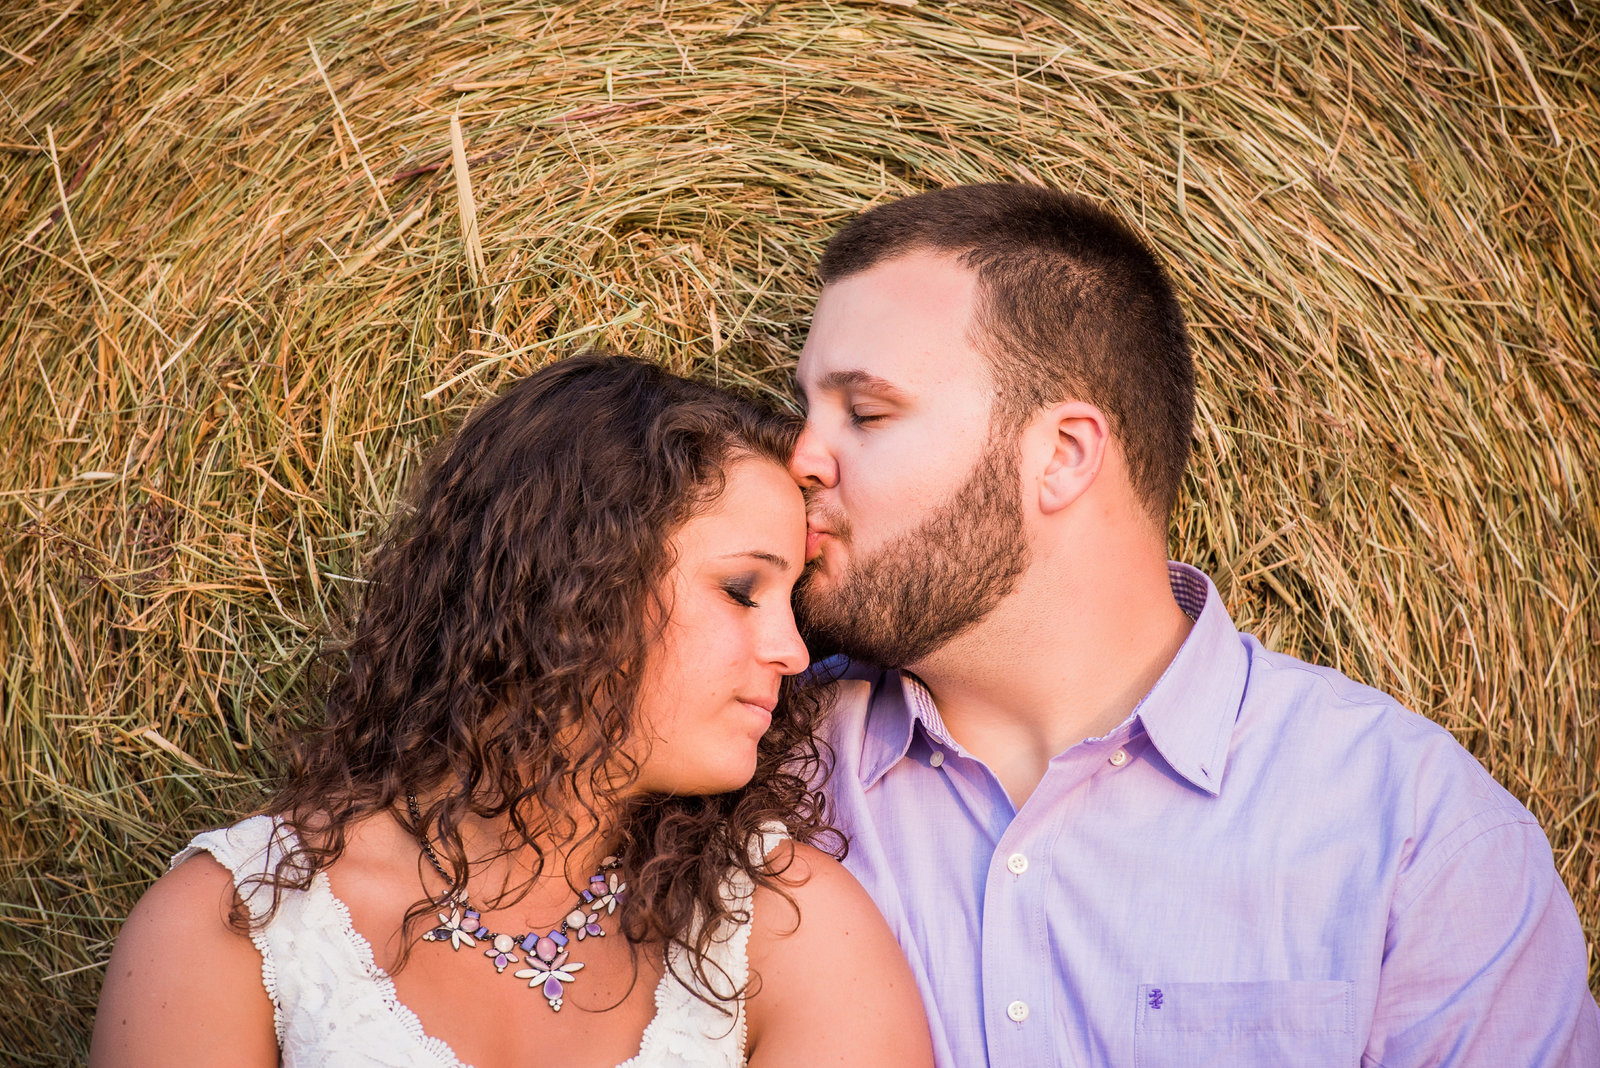 NJ_Rustic_Engagement_Photography162